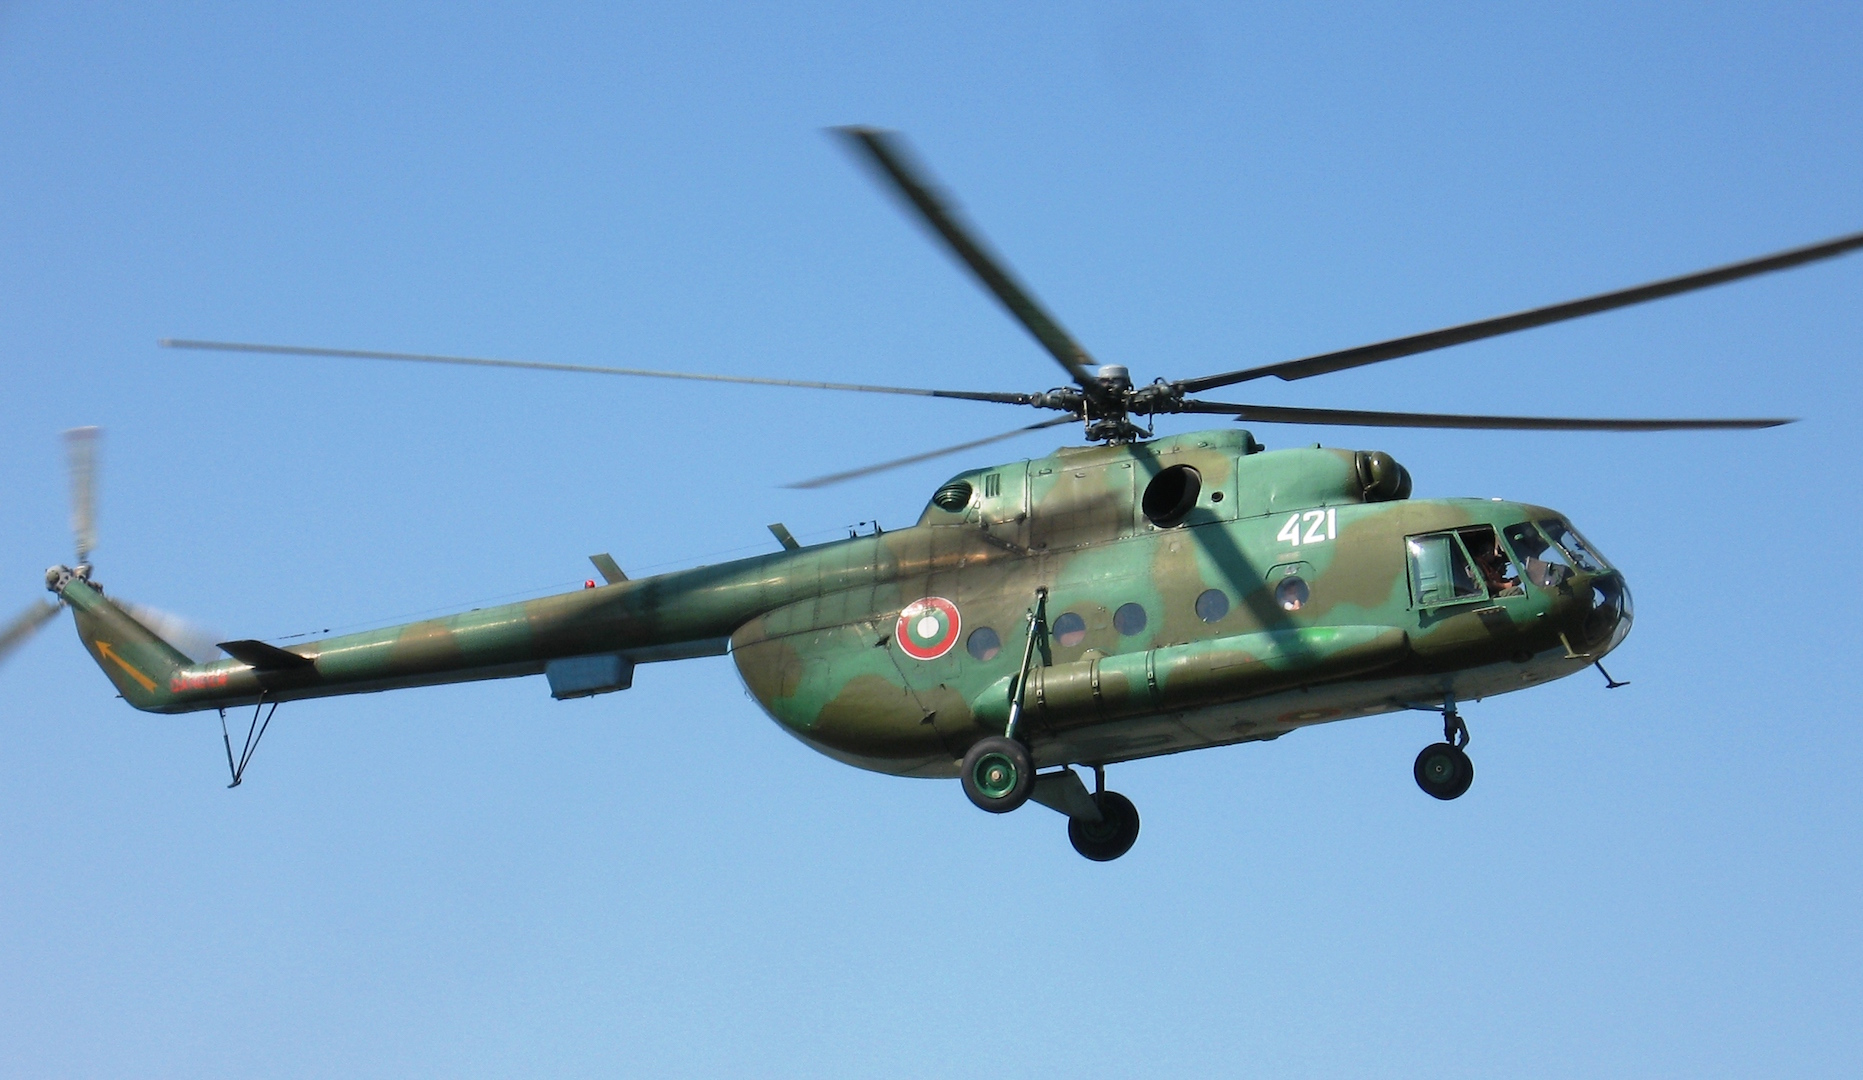 Mi-17 Bulgarian helicopter crashes, 2 pilots dead